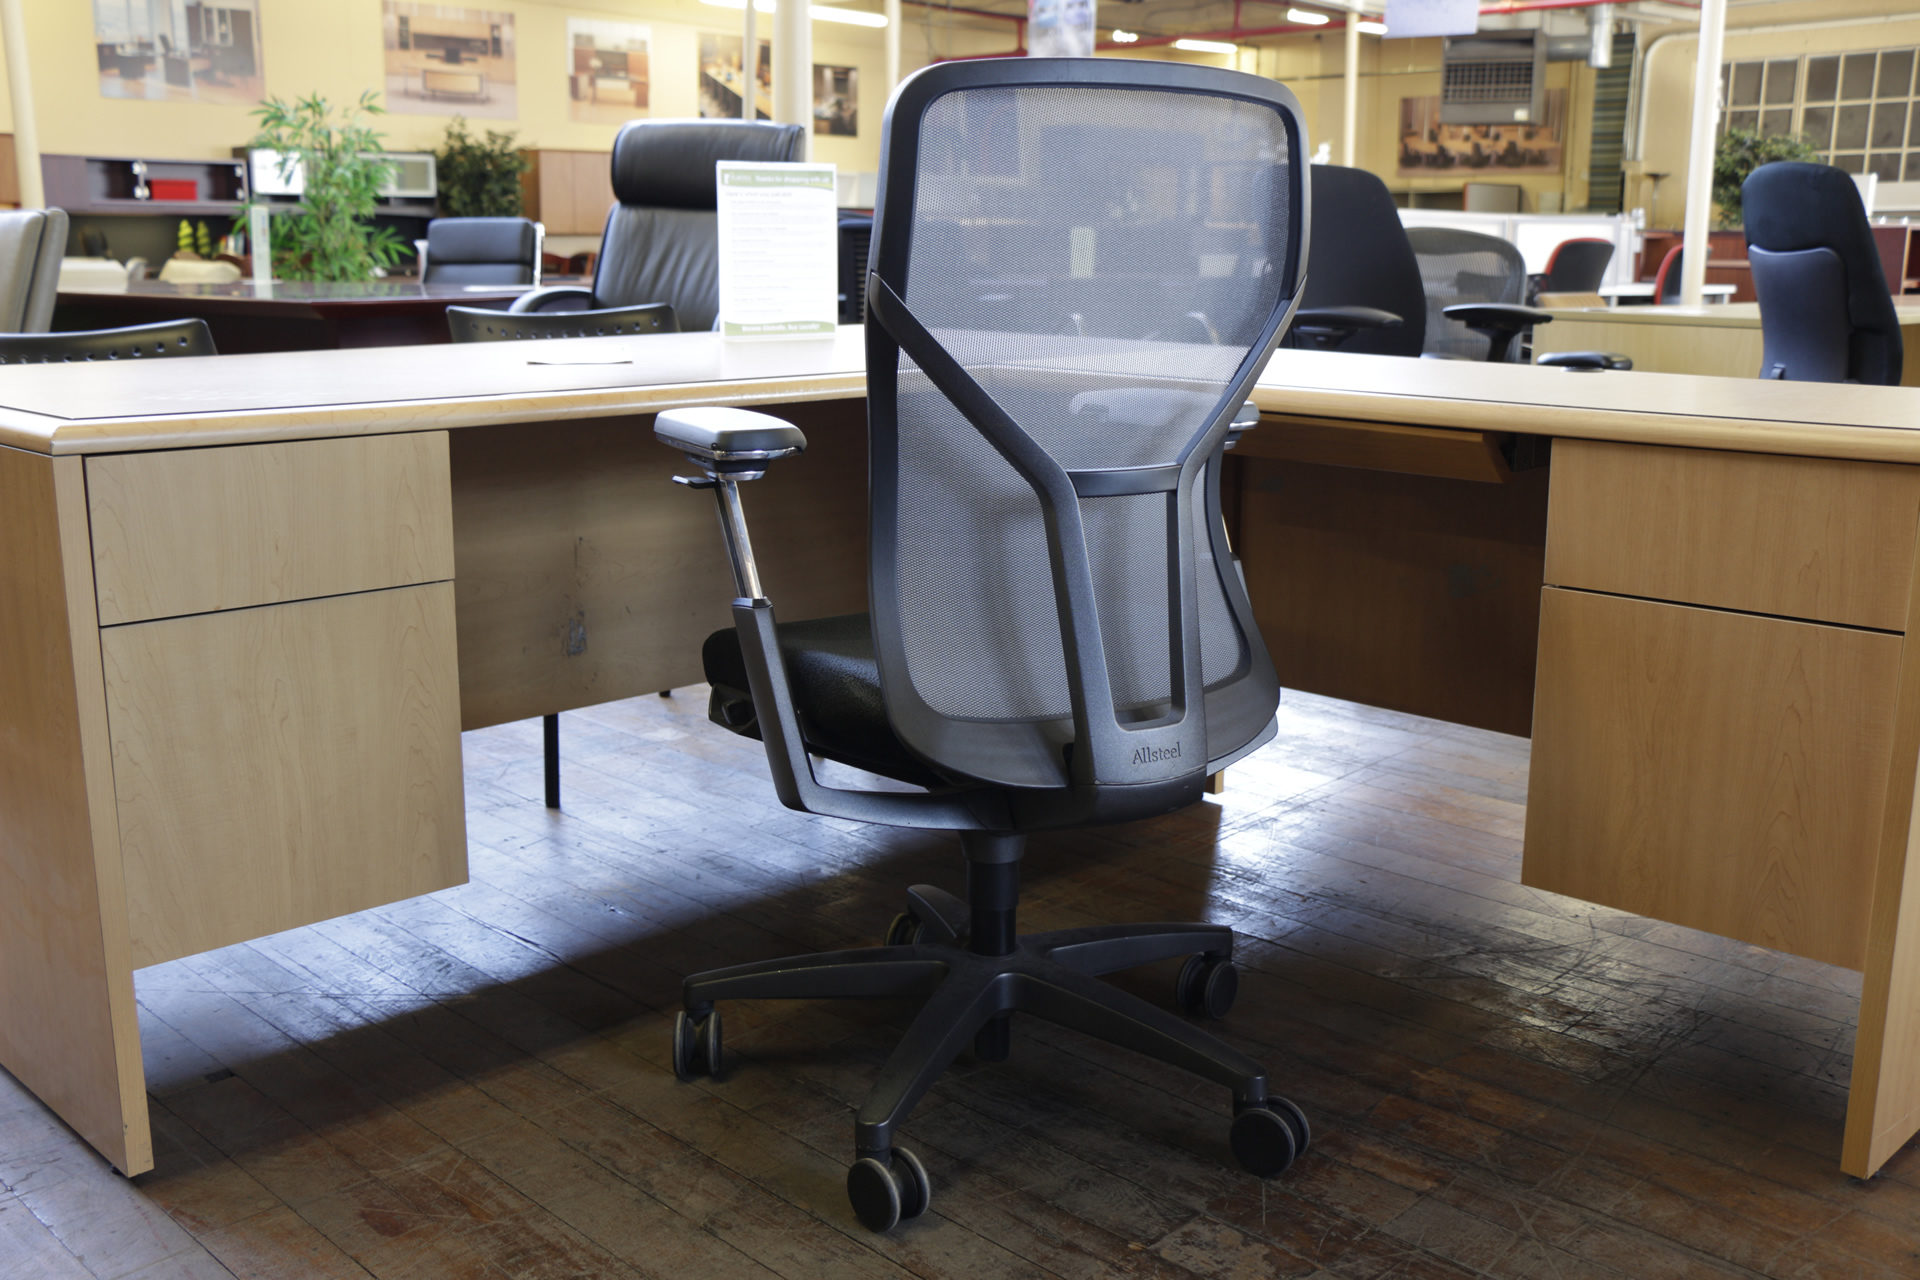 peartreeofficefurniture_peartreeofficefurniture_mg_1844.jpg